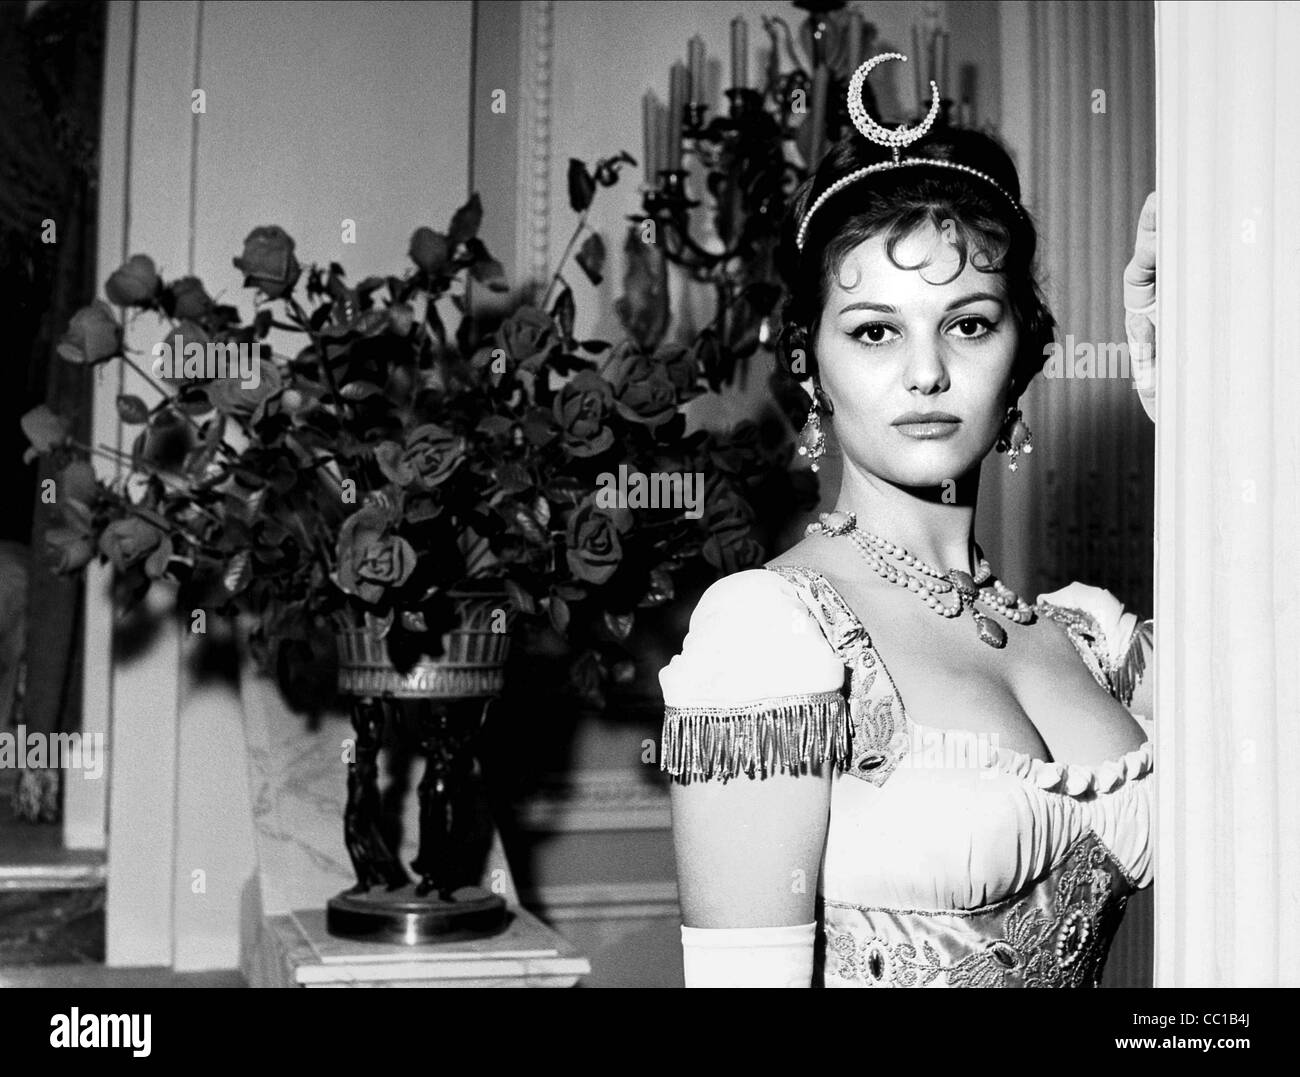 CLAUDIA CARDINALE THE BATTLE OF AUSTERLITZ (1960) - Stock Image